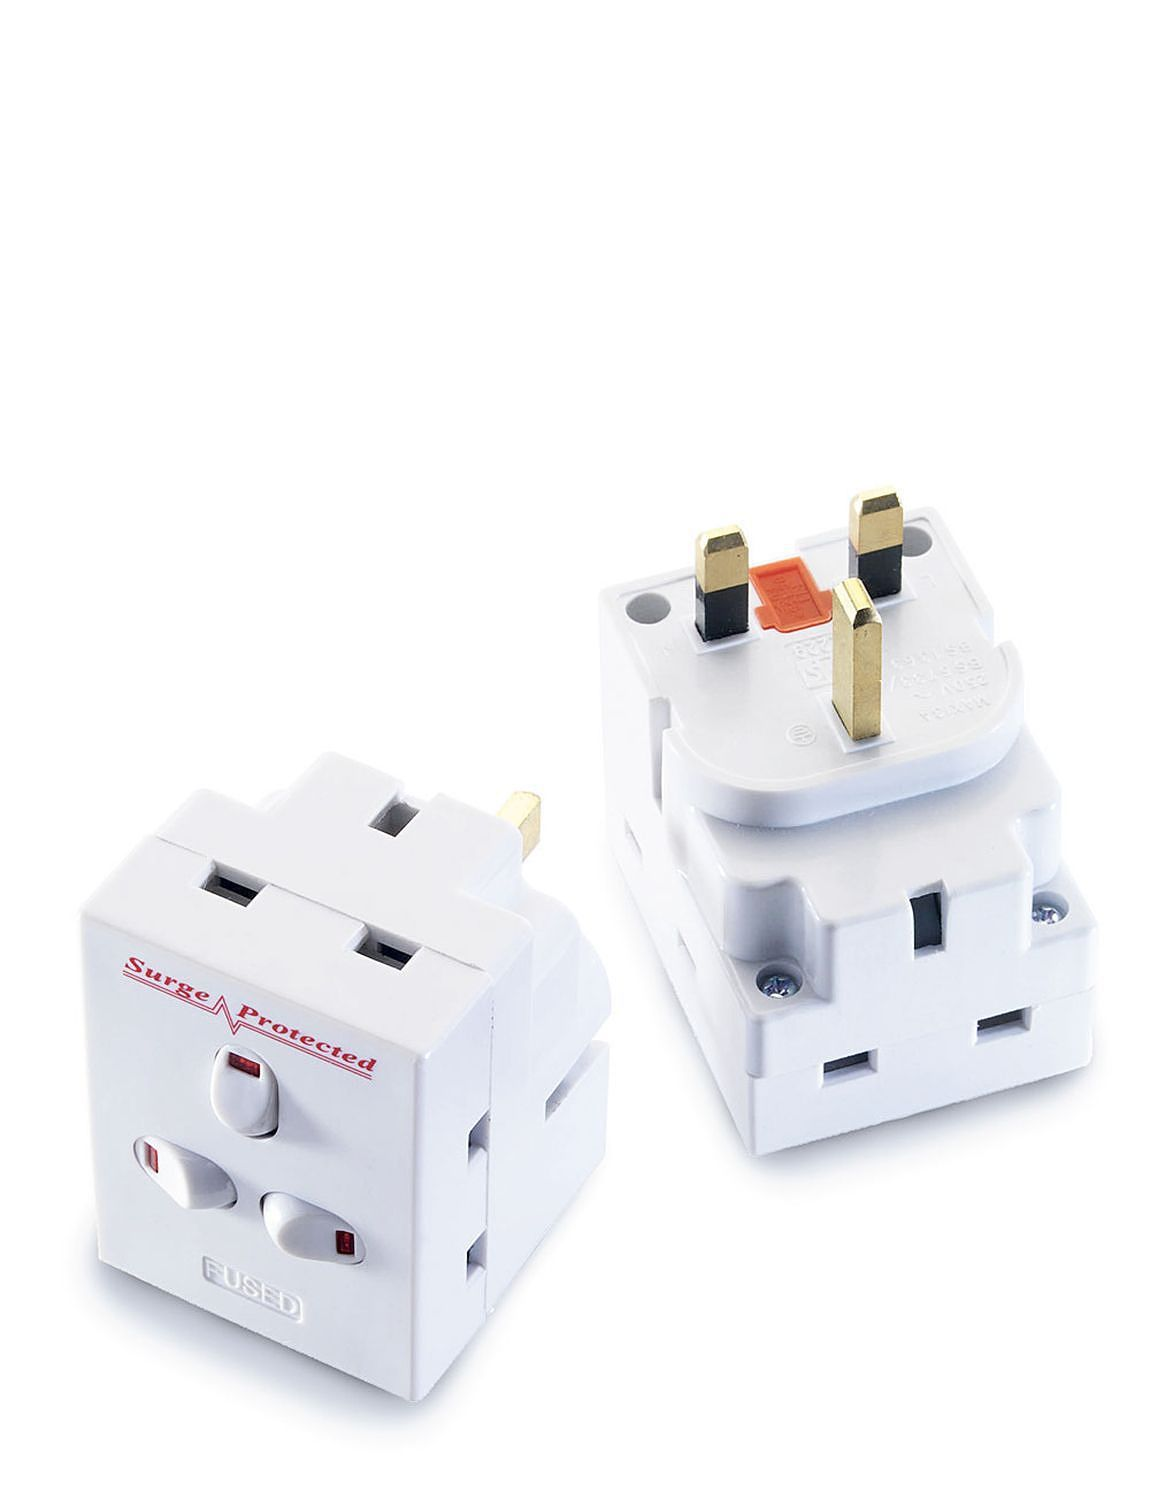 Surge protection adaptor multi plug chums for Homeware accessories